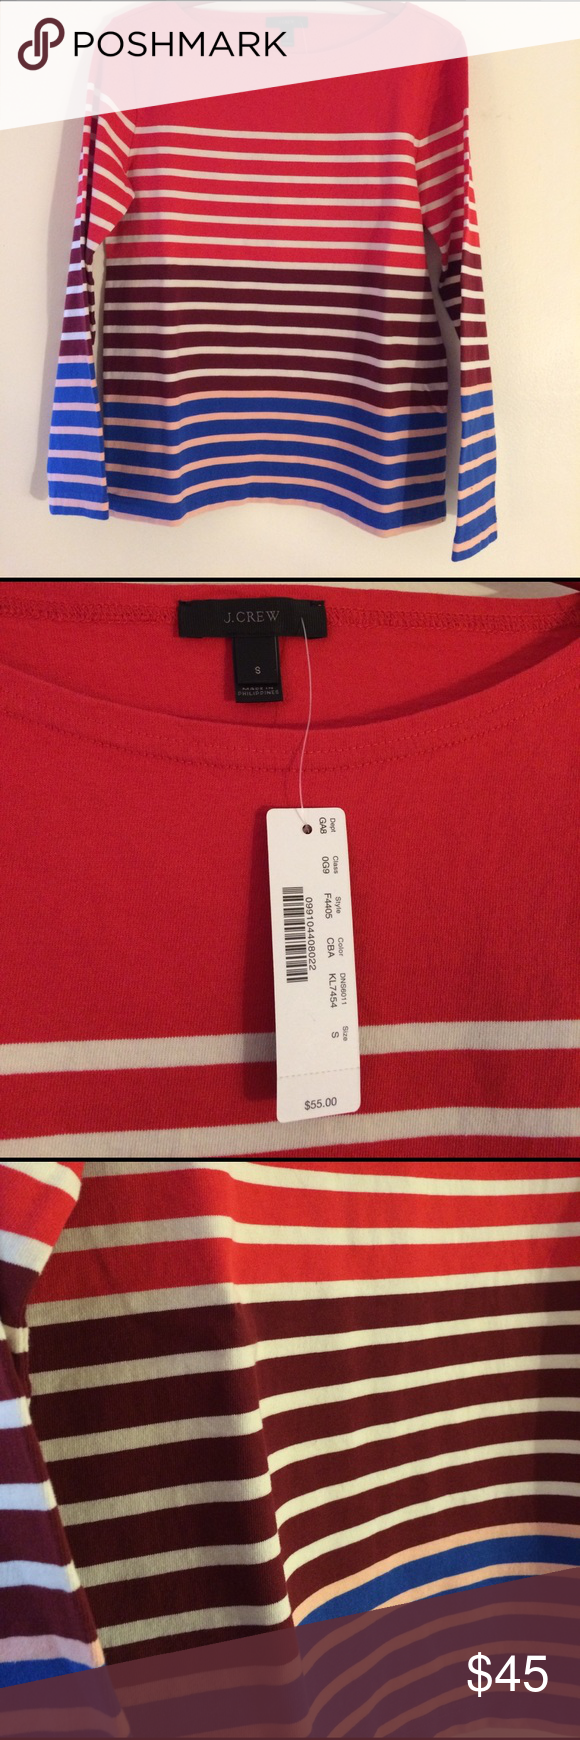 NWT J. Crew 3/4 Sleeve Striped T-Shirt New with tags J. Crew 3/4 sleeve shirt. Purchased without trying on because I loved the color and small was the only size left, but it does not fit me. I need a medium or even large usually in J.Crew shirts. J. Crew Tops Tees - Long Sleeve